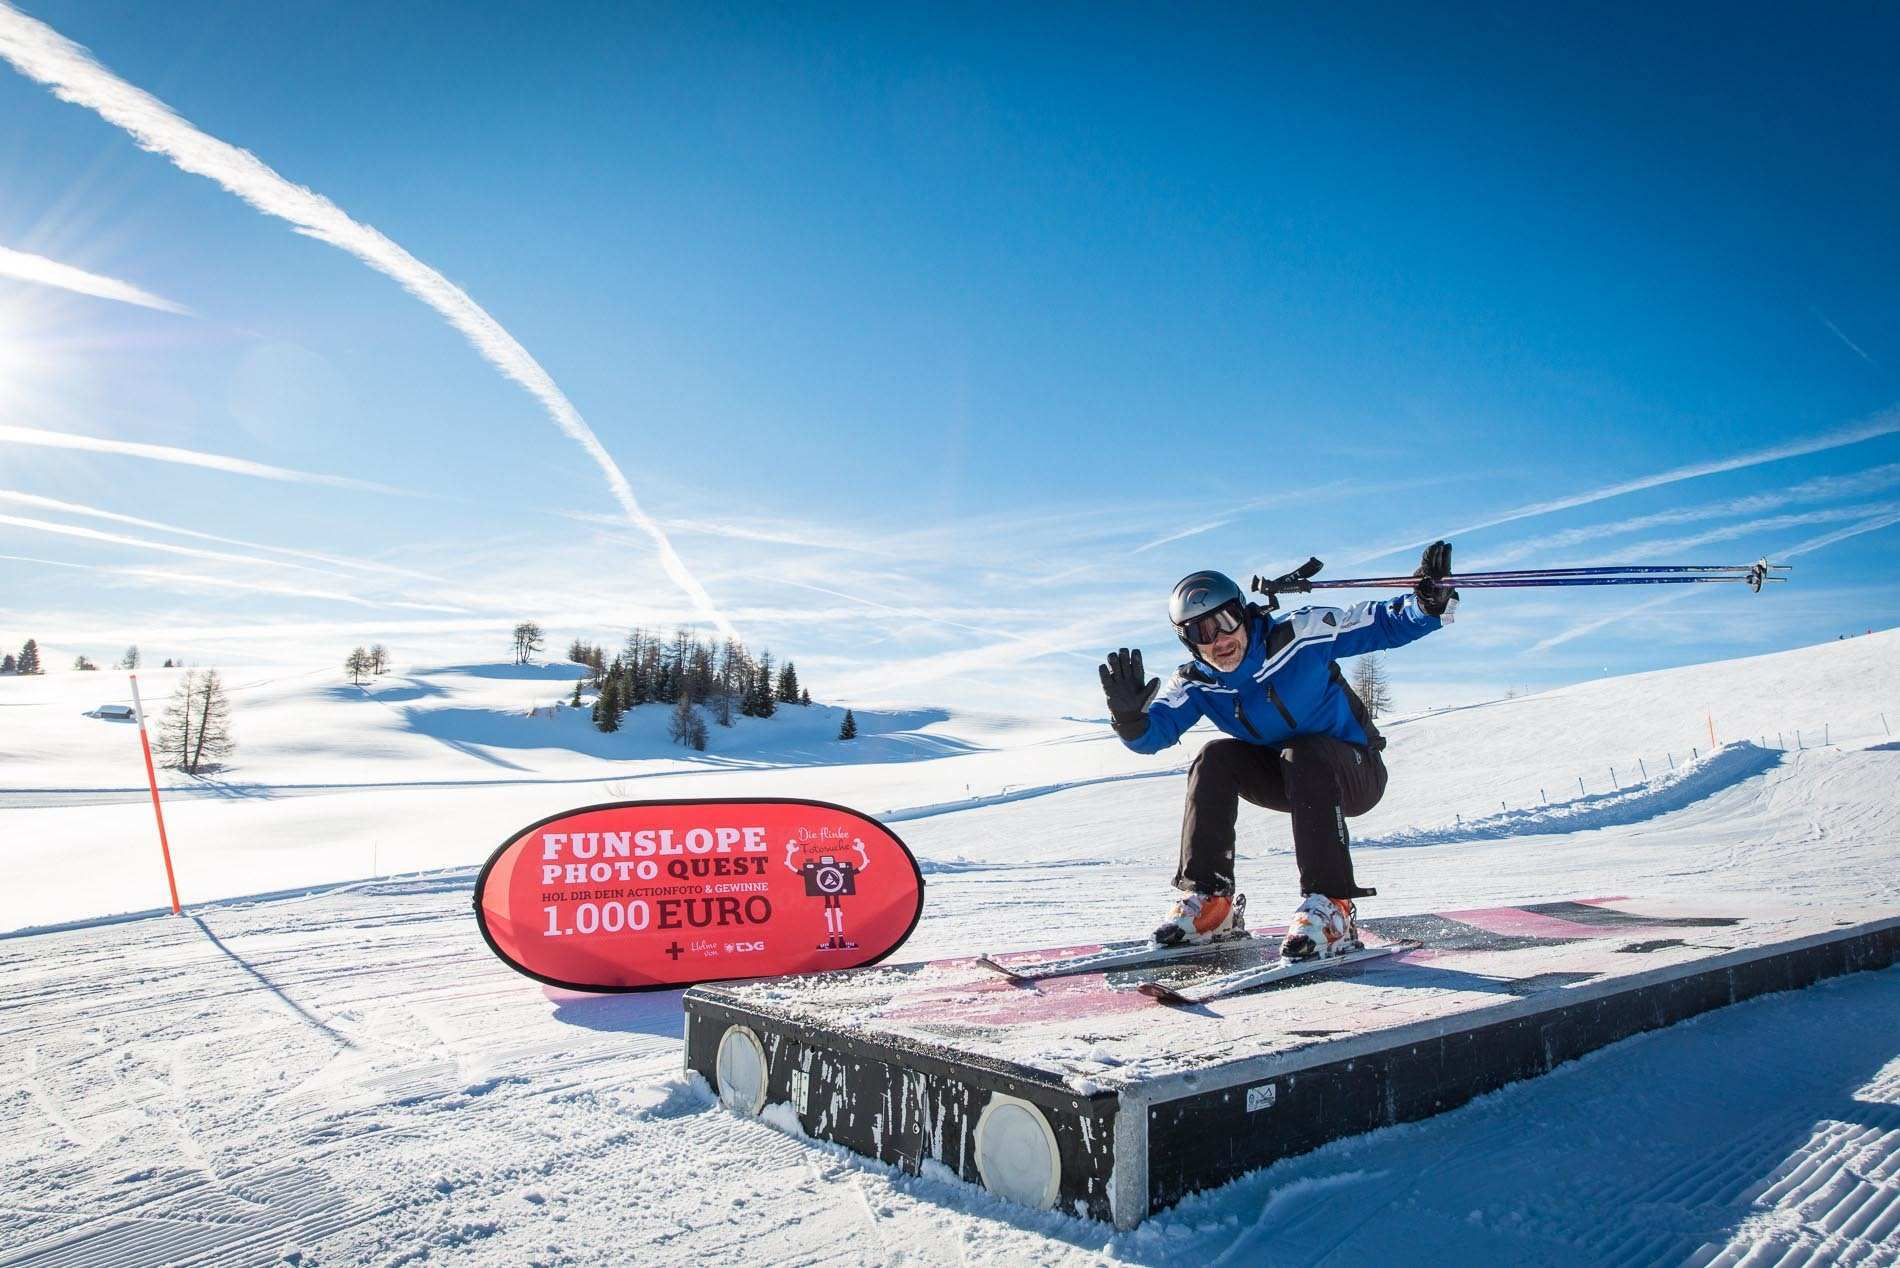 Funslope Photo Quest Alta Badia – 20.02.2020